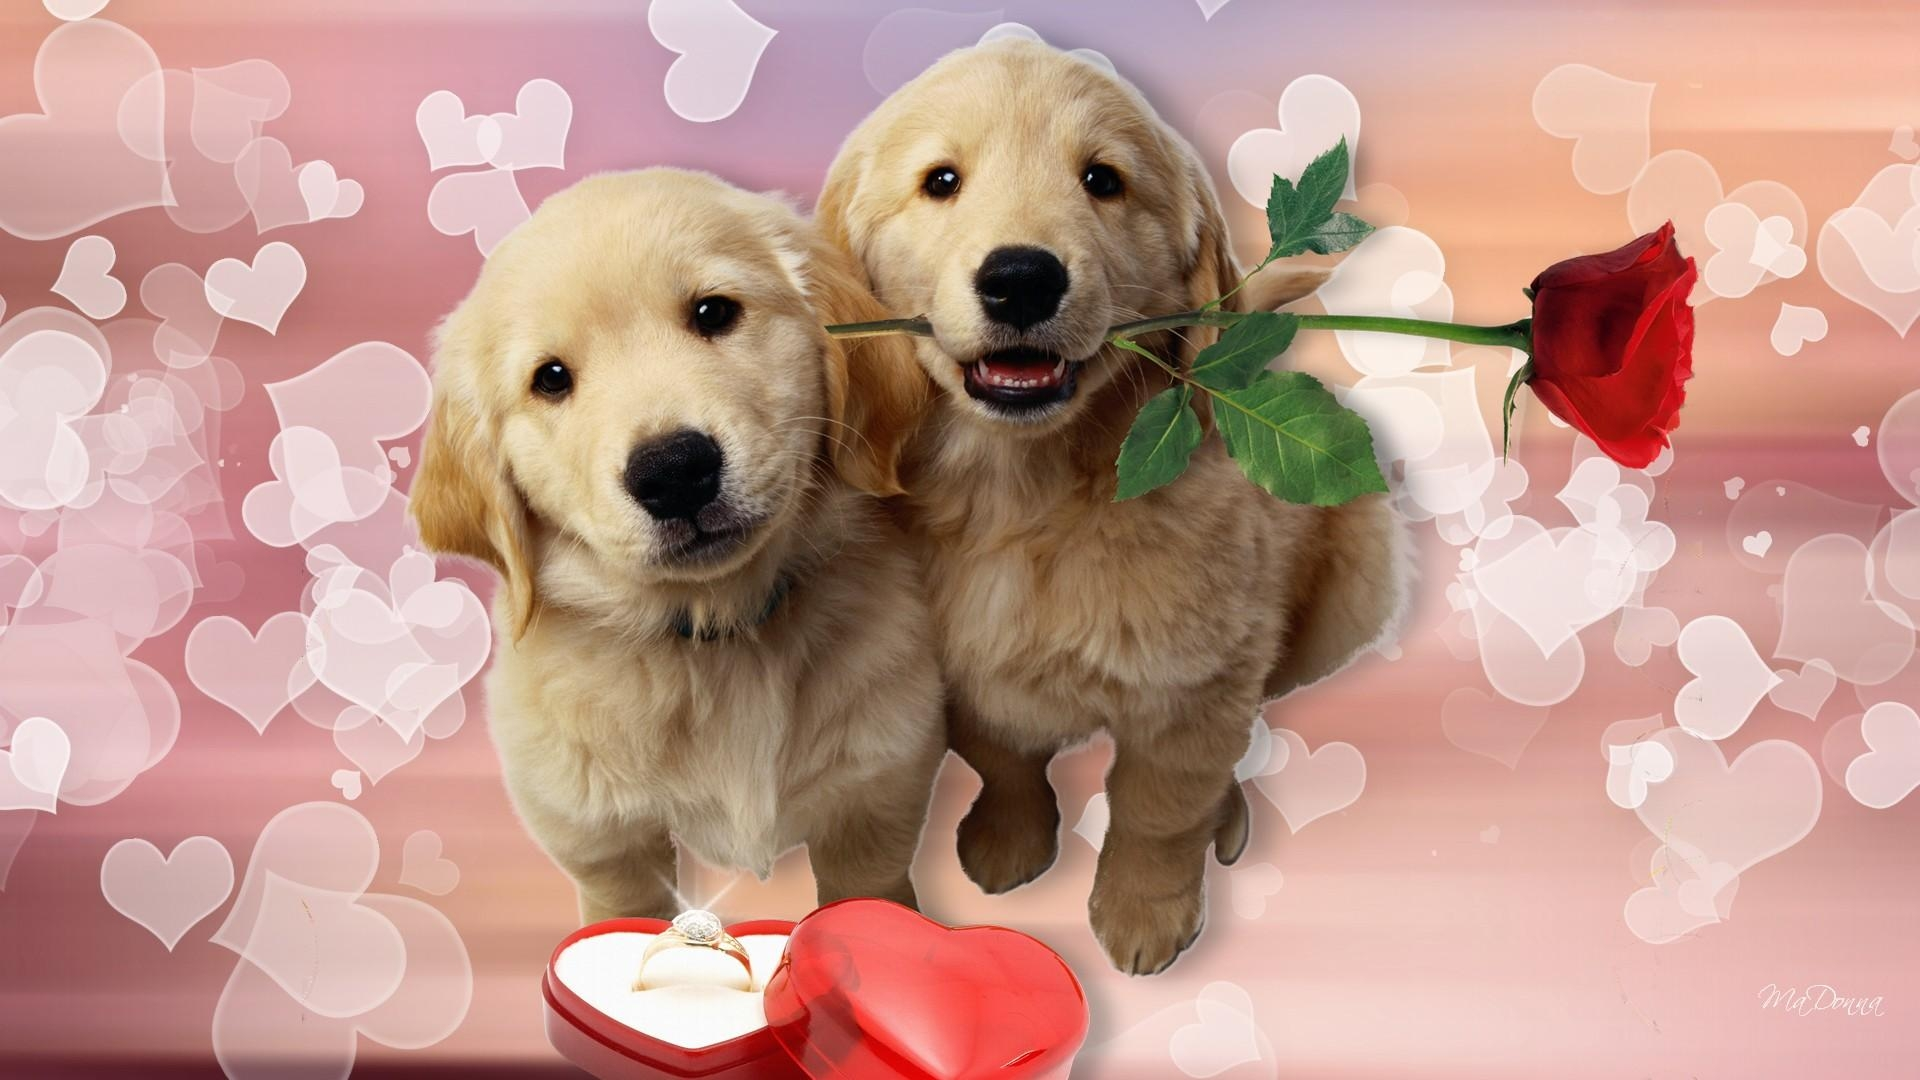 Puppy Love Wallpaper